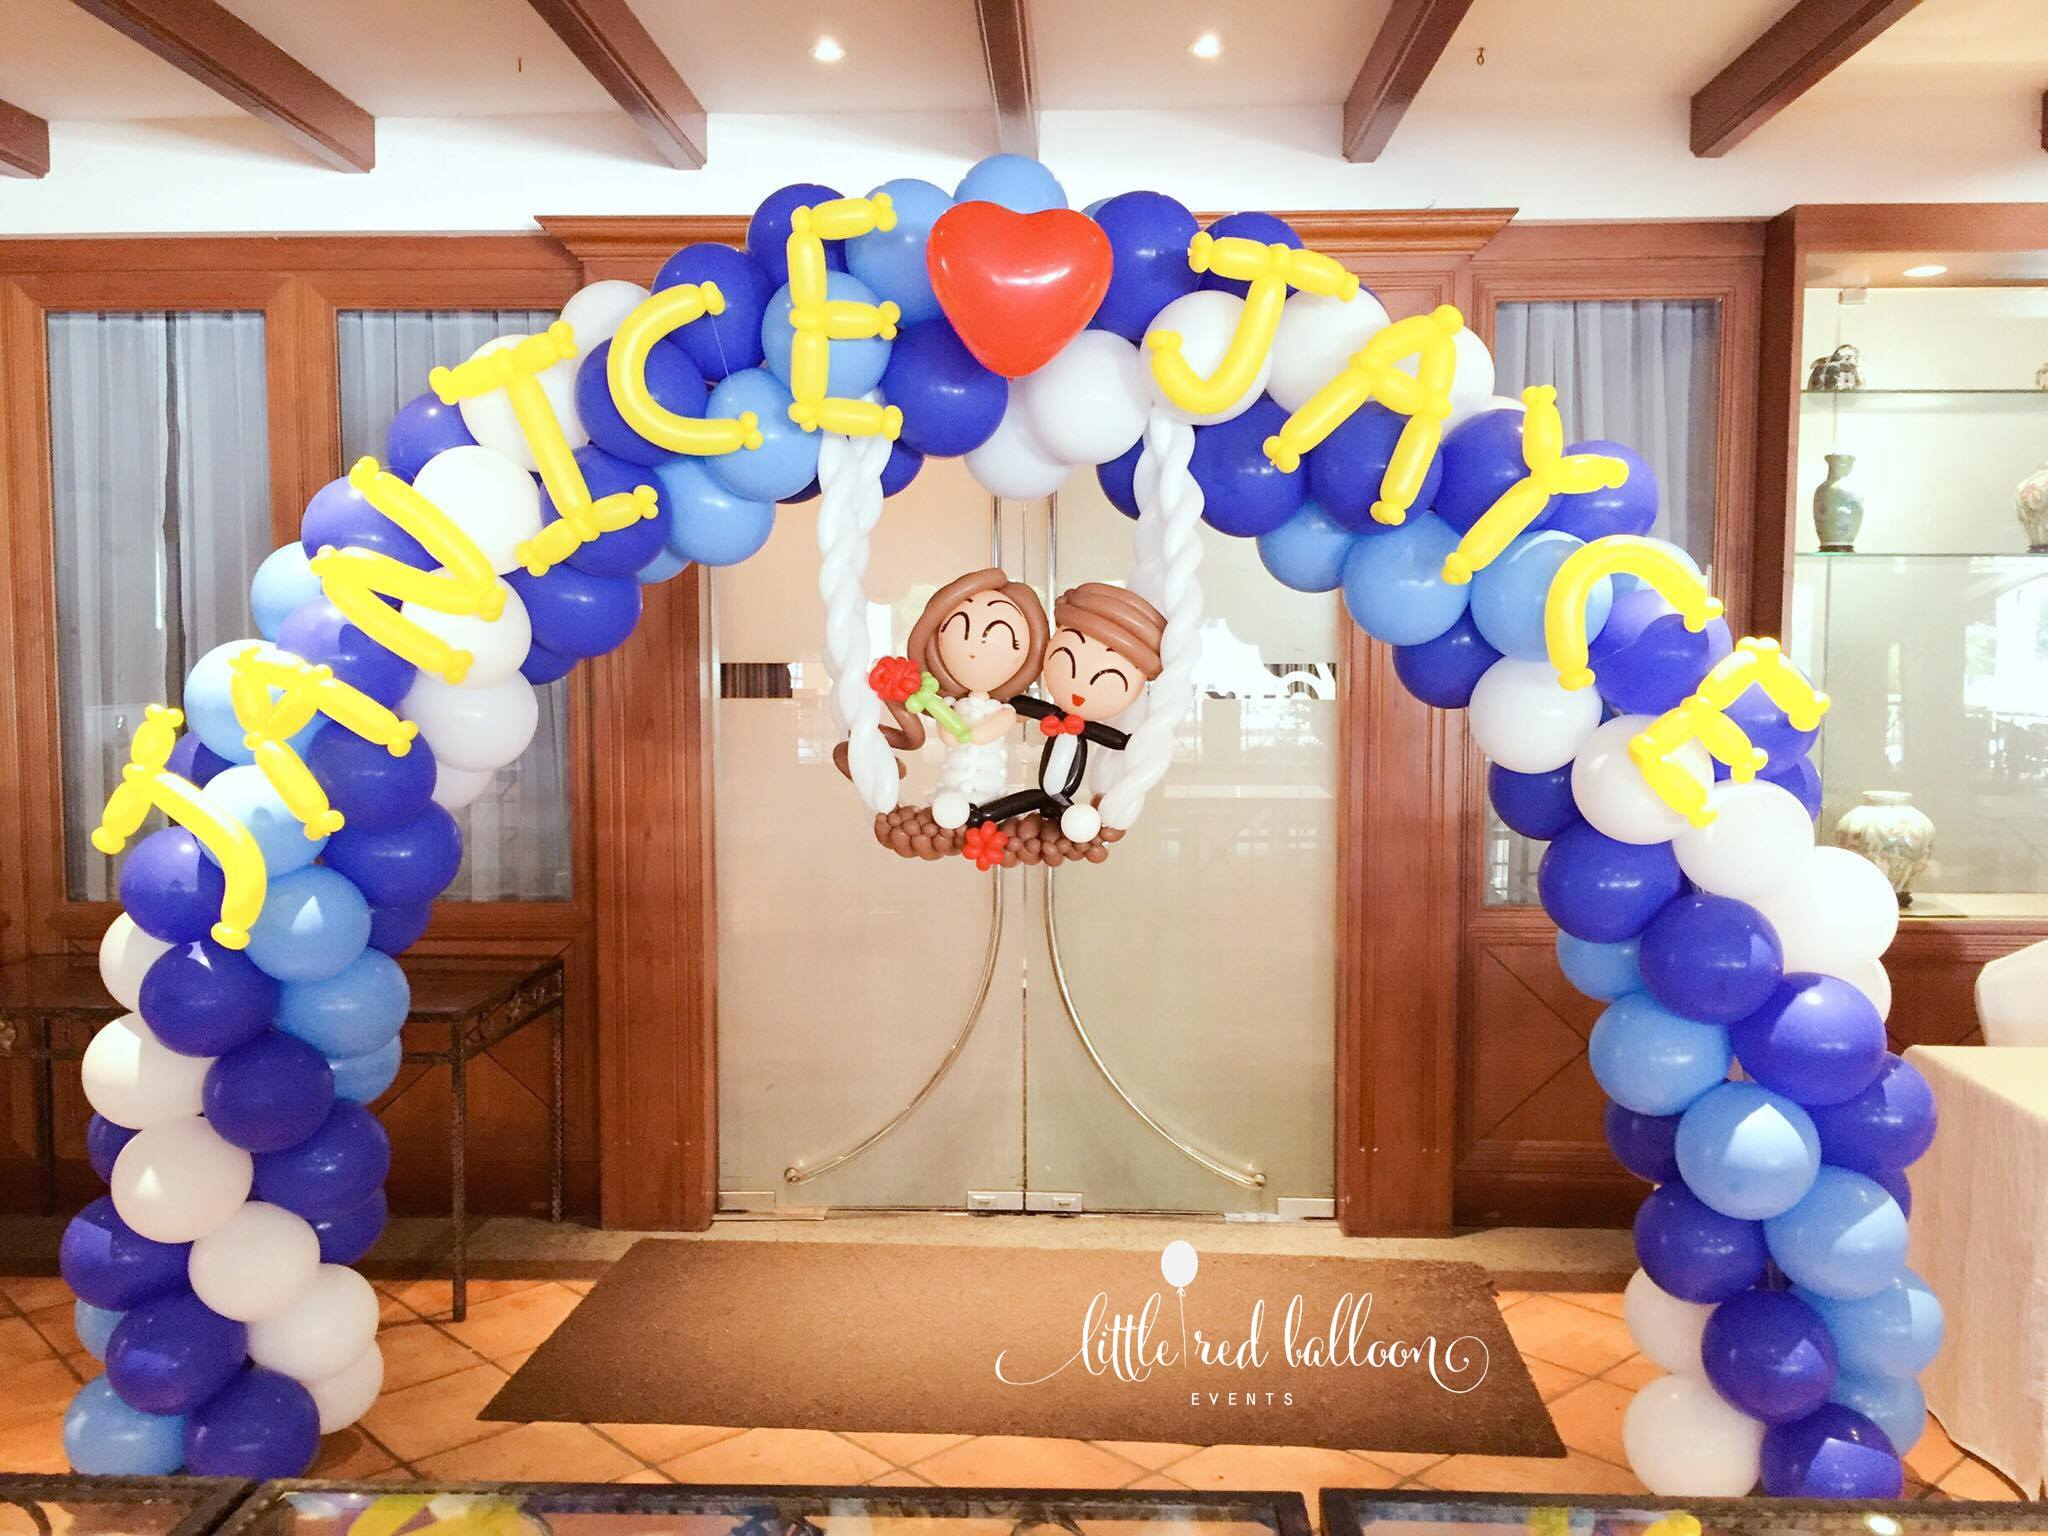 Balloon arch for wedding - Wedding Couple Balloon Arch